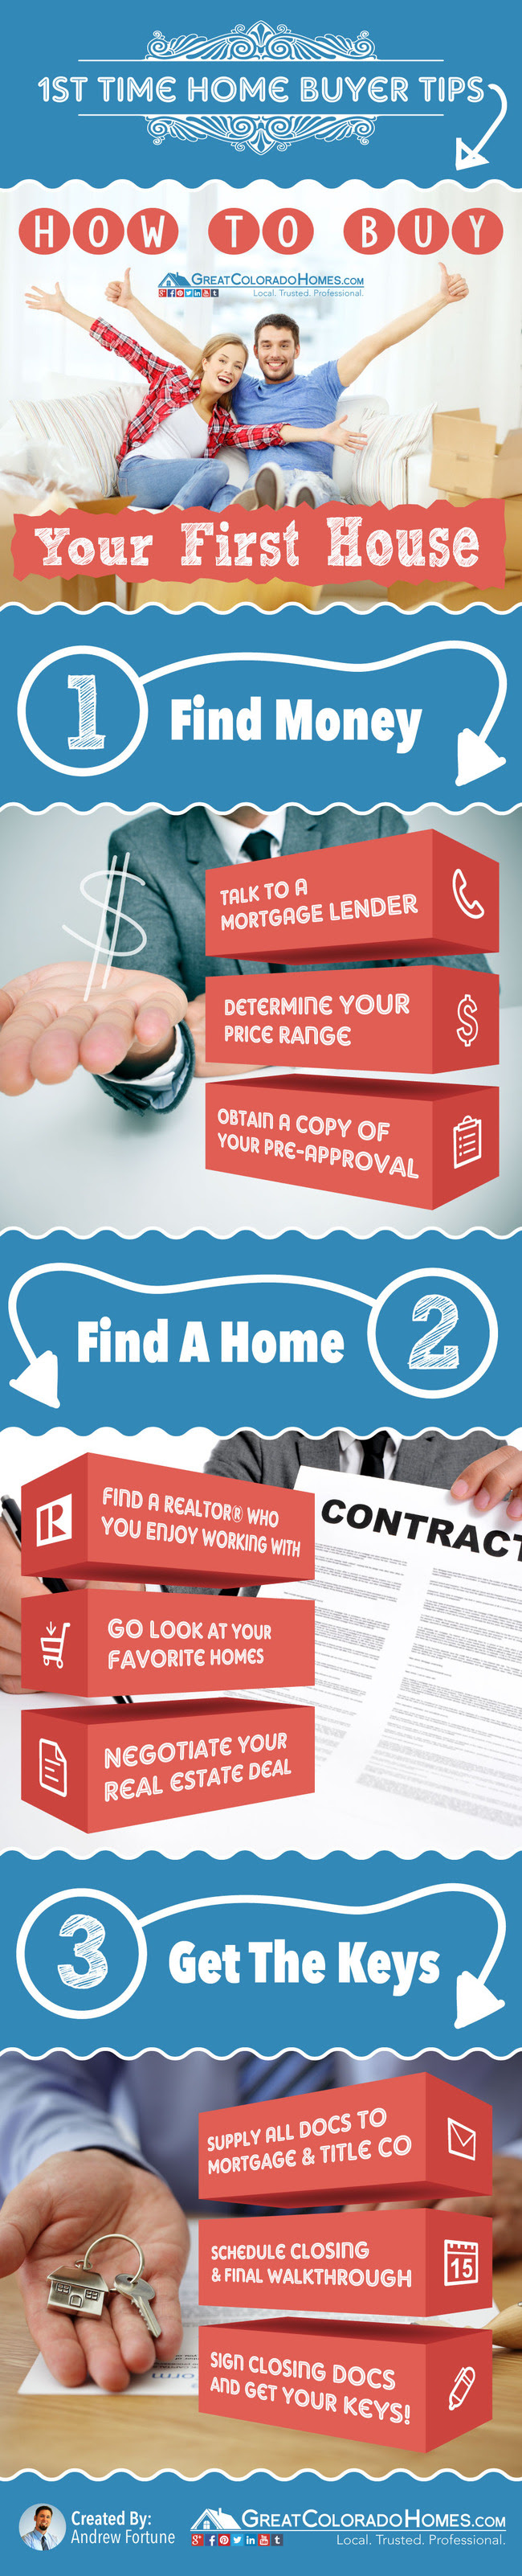 First Time Home Buyer Tips - How To Buy Your First House